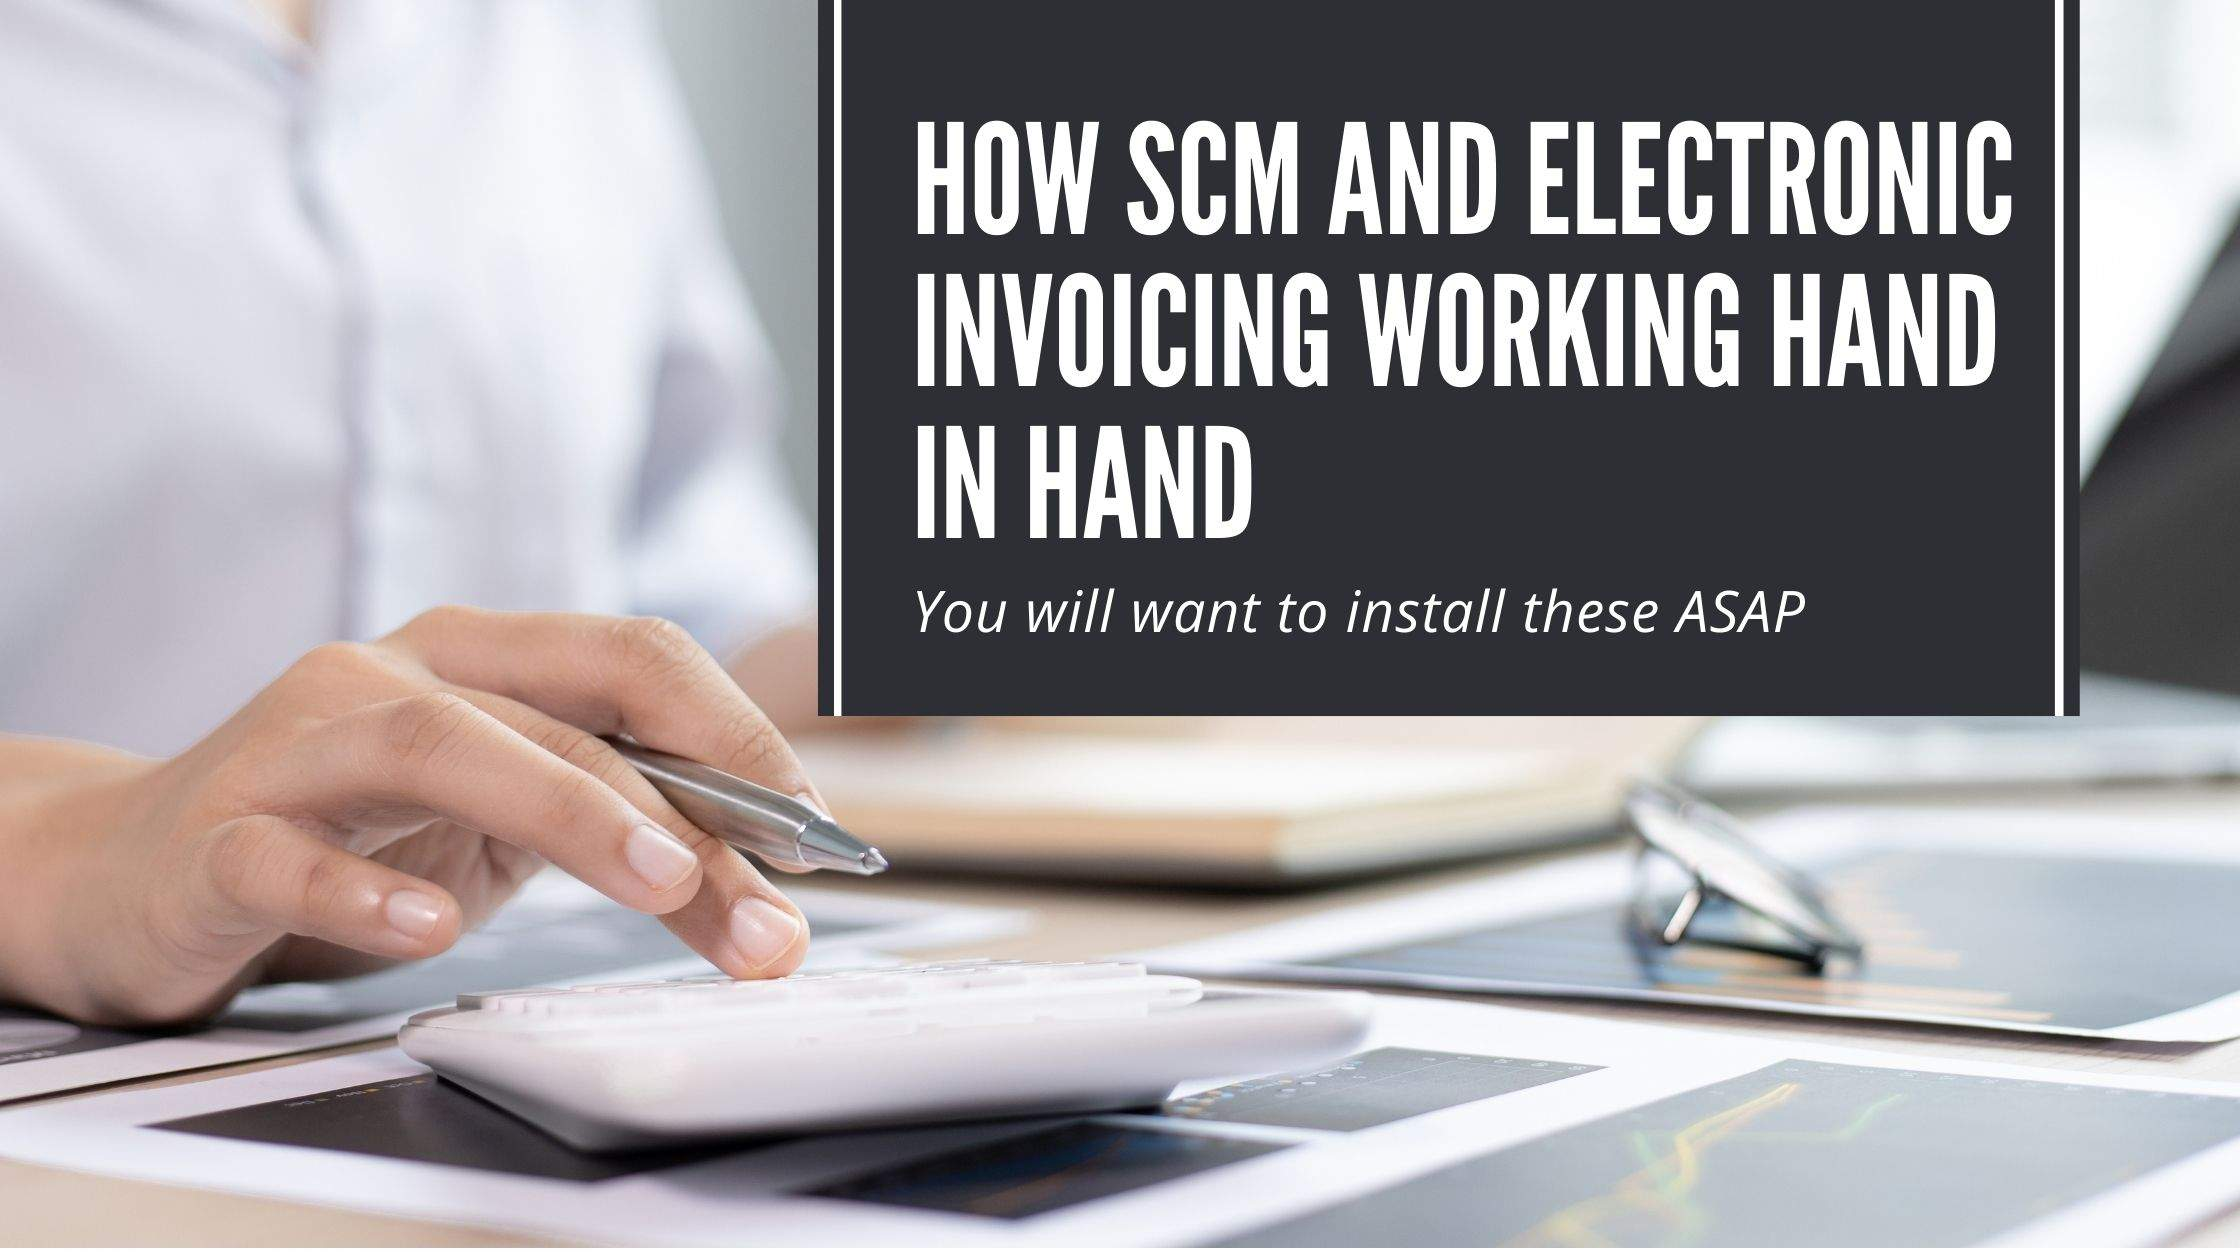 How SCM And Electronic Invoicing Working Hand In Hand